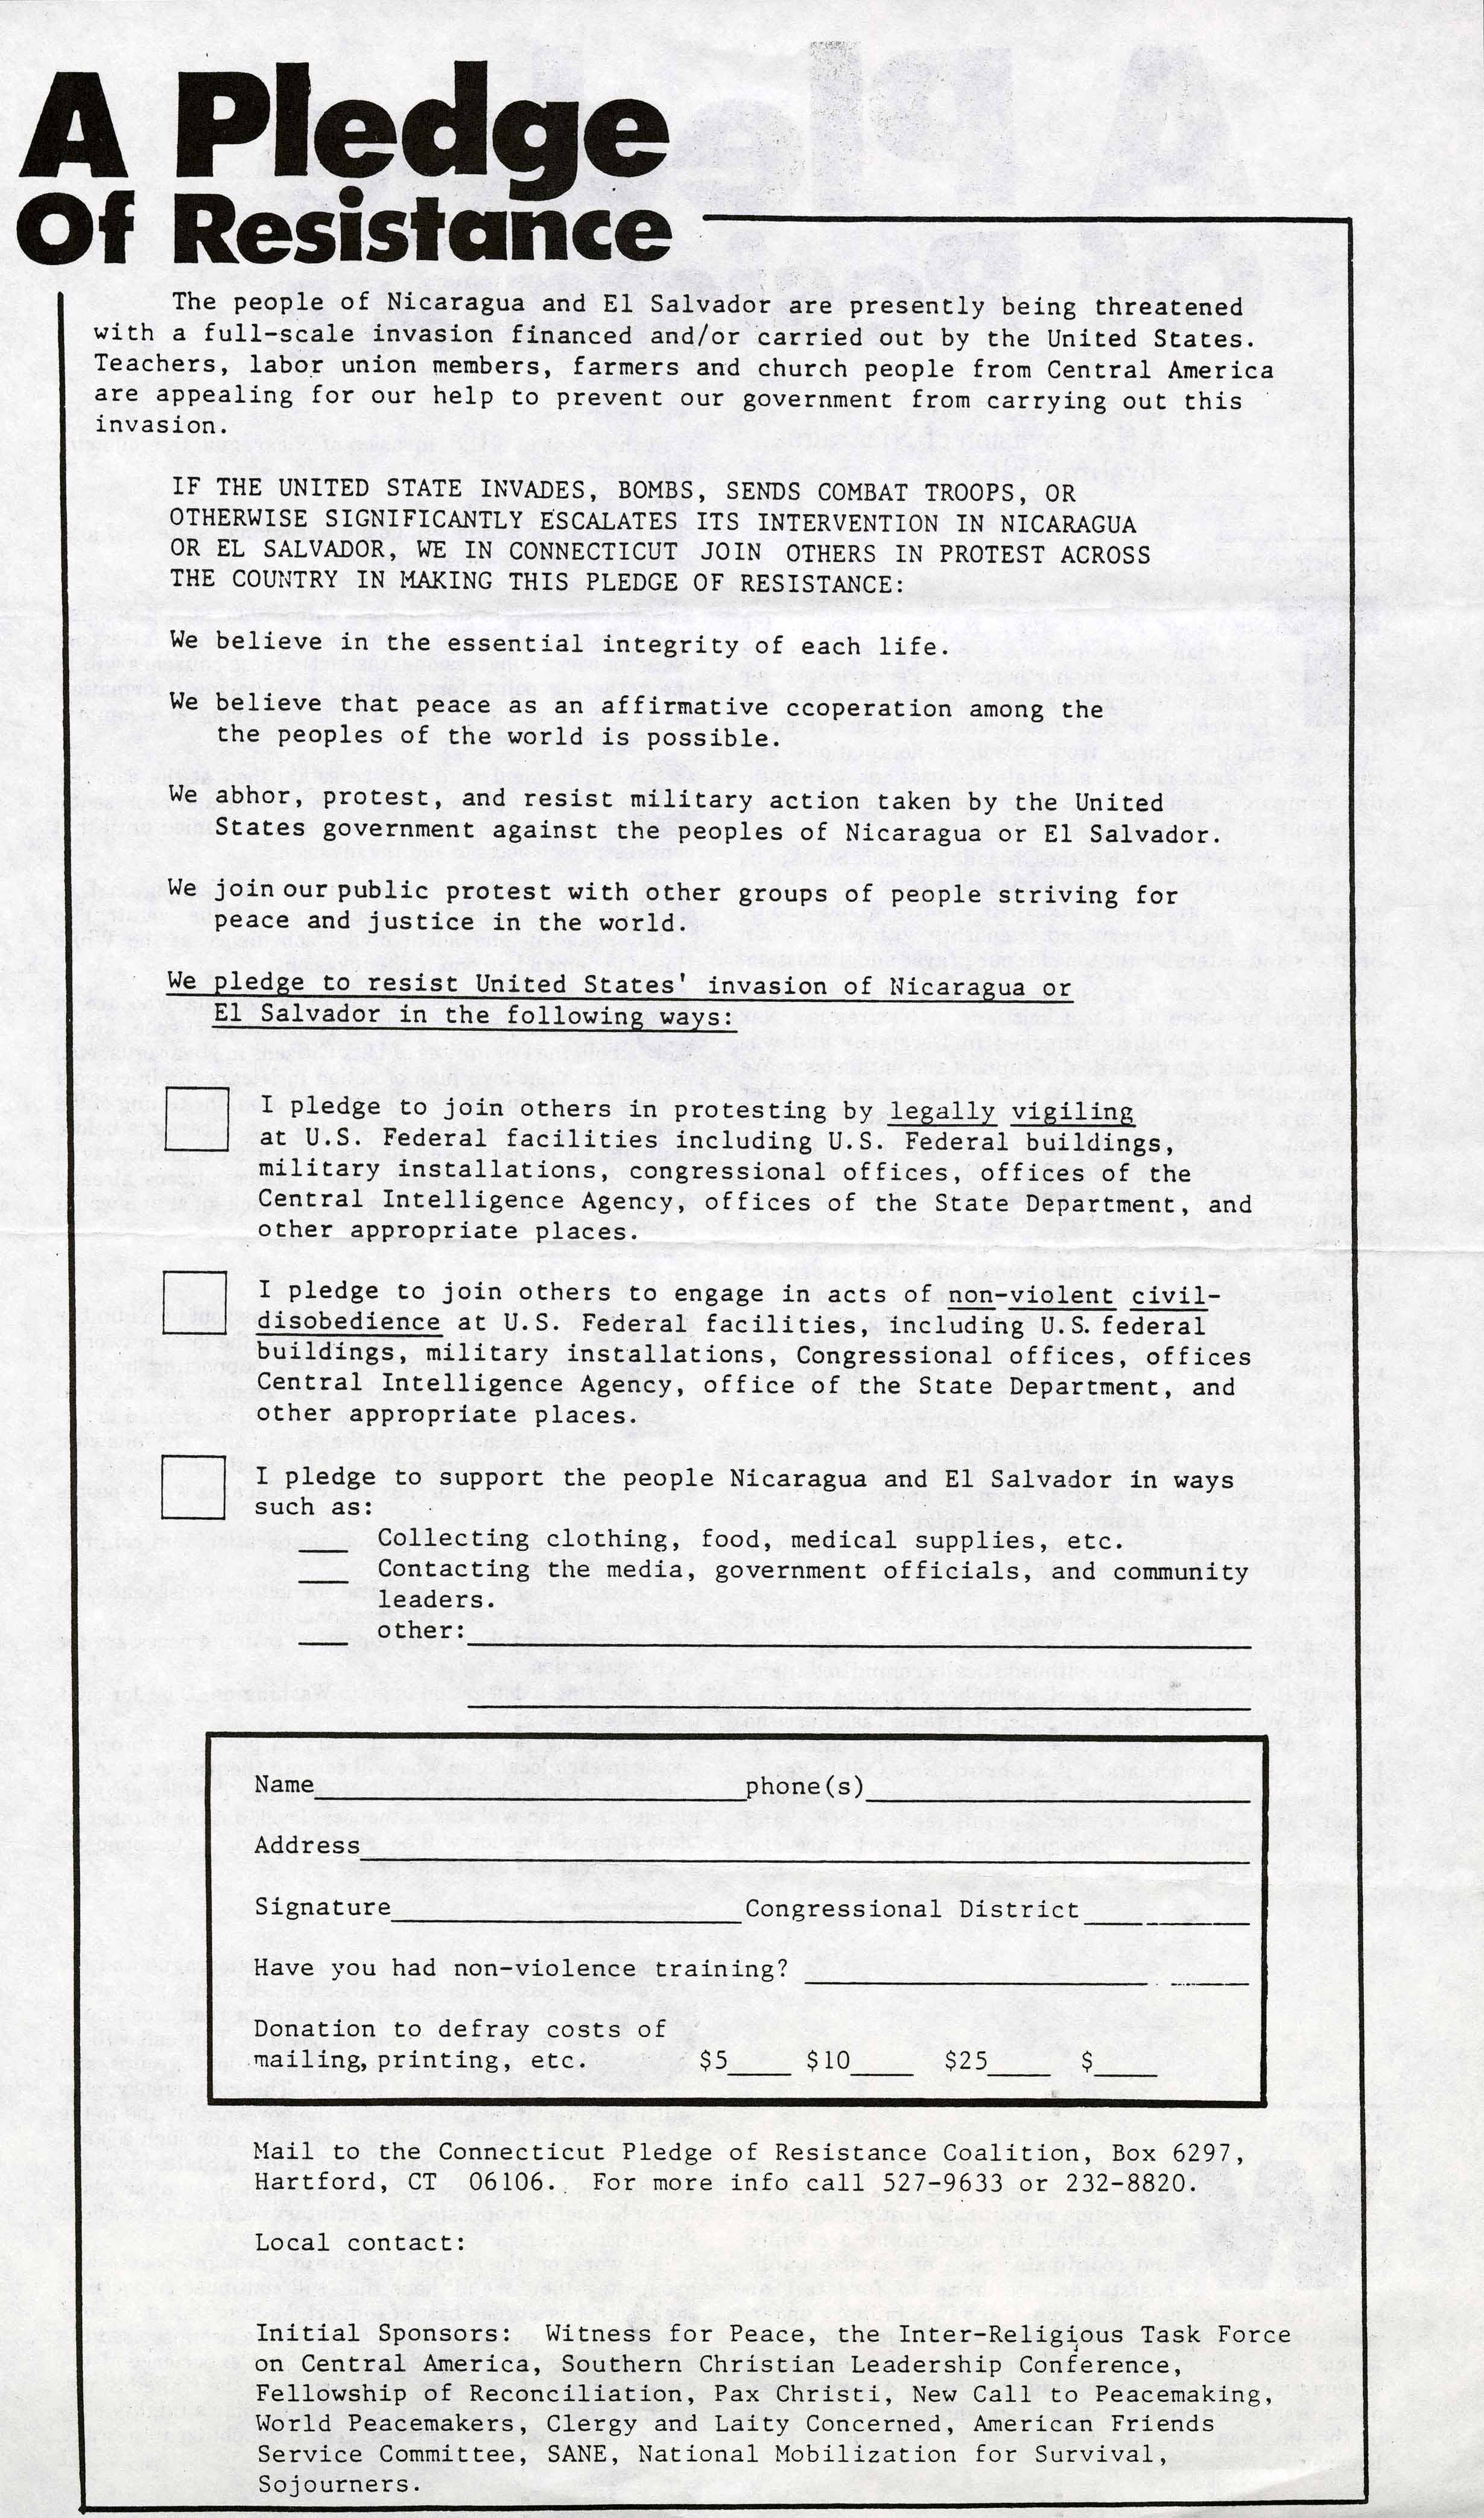 uconn_asc_1992-0001_Connecticut-Pledge-of-Resistance_005